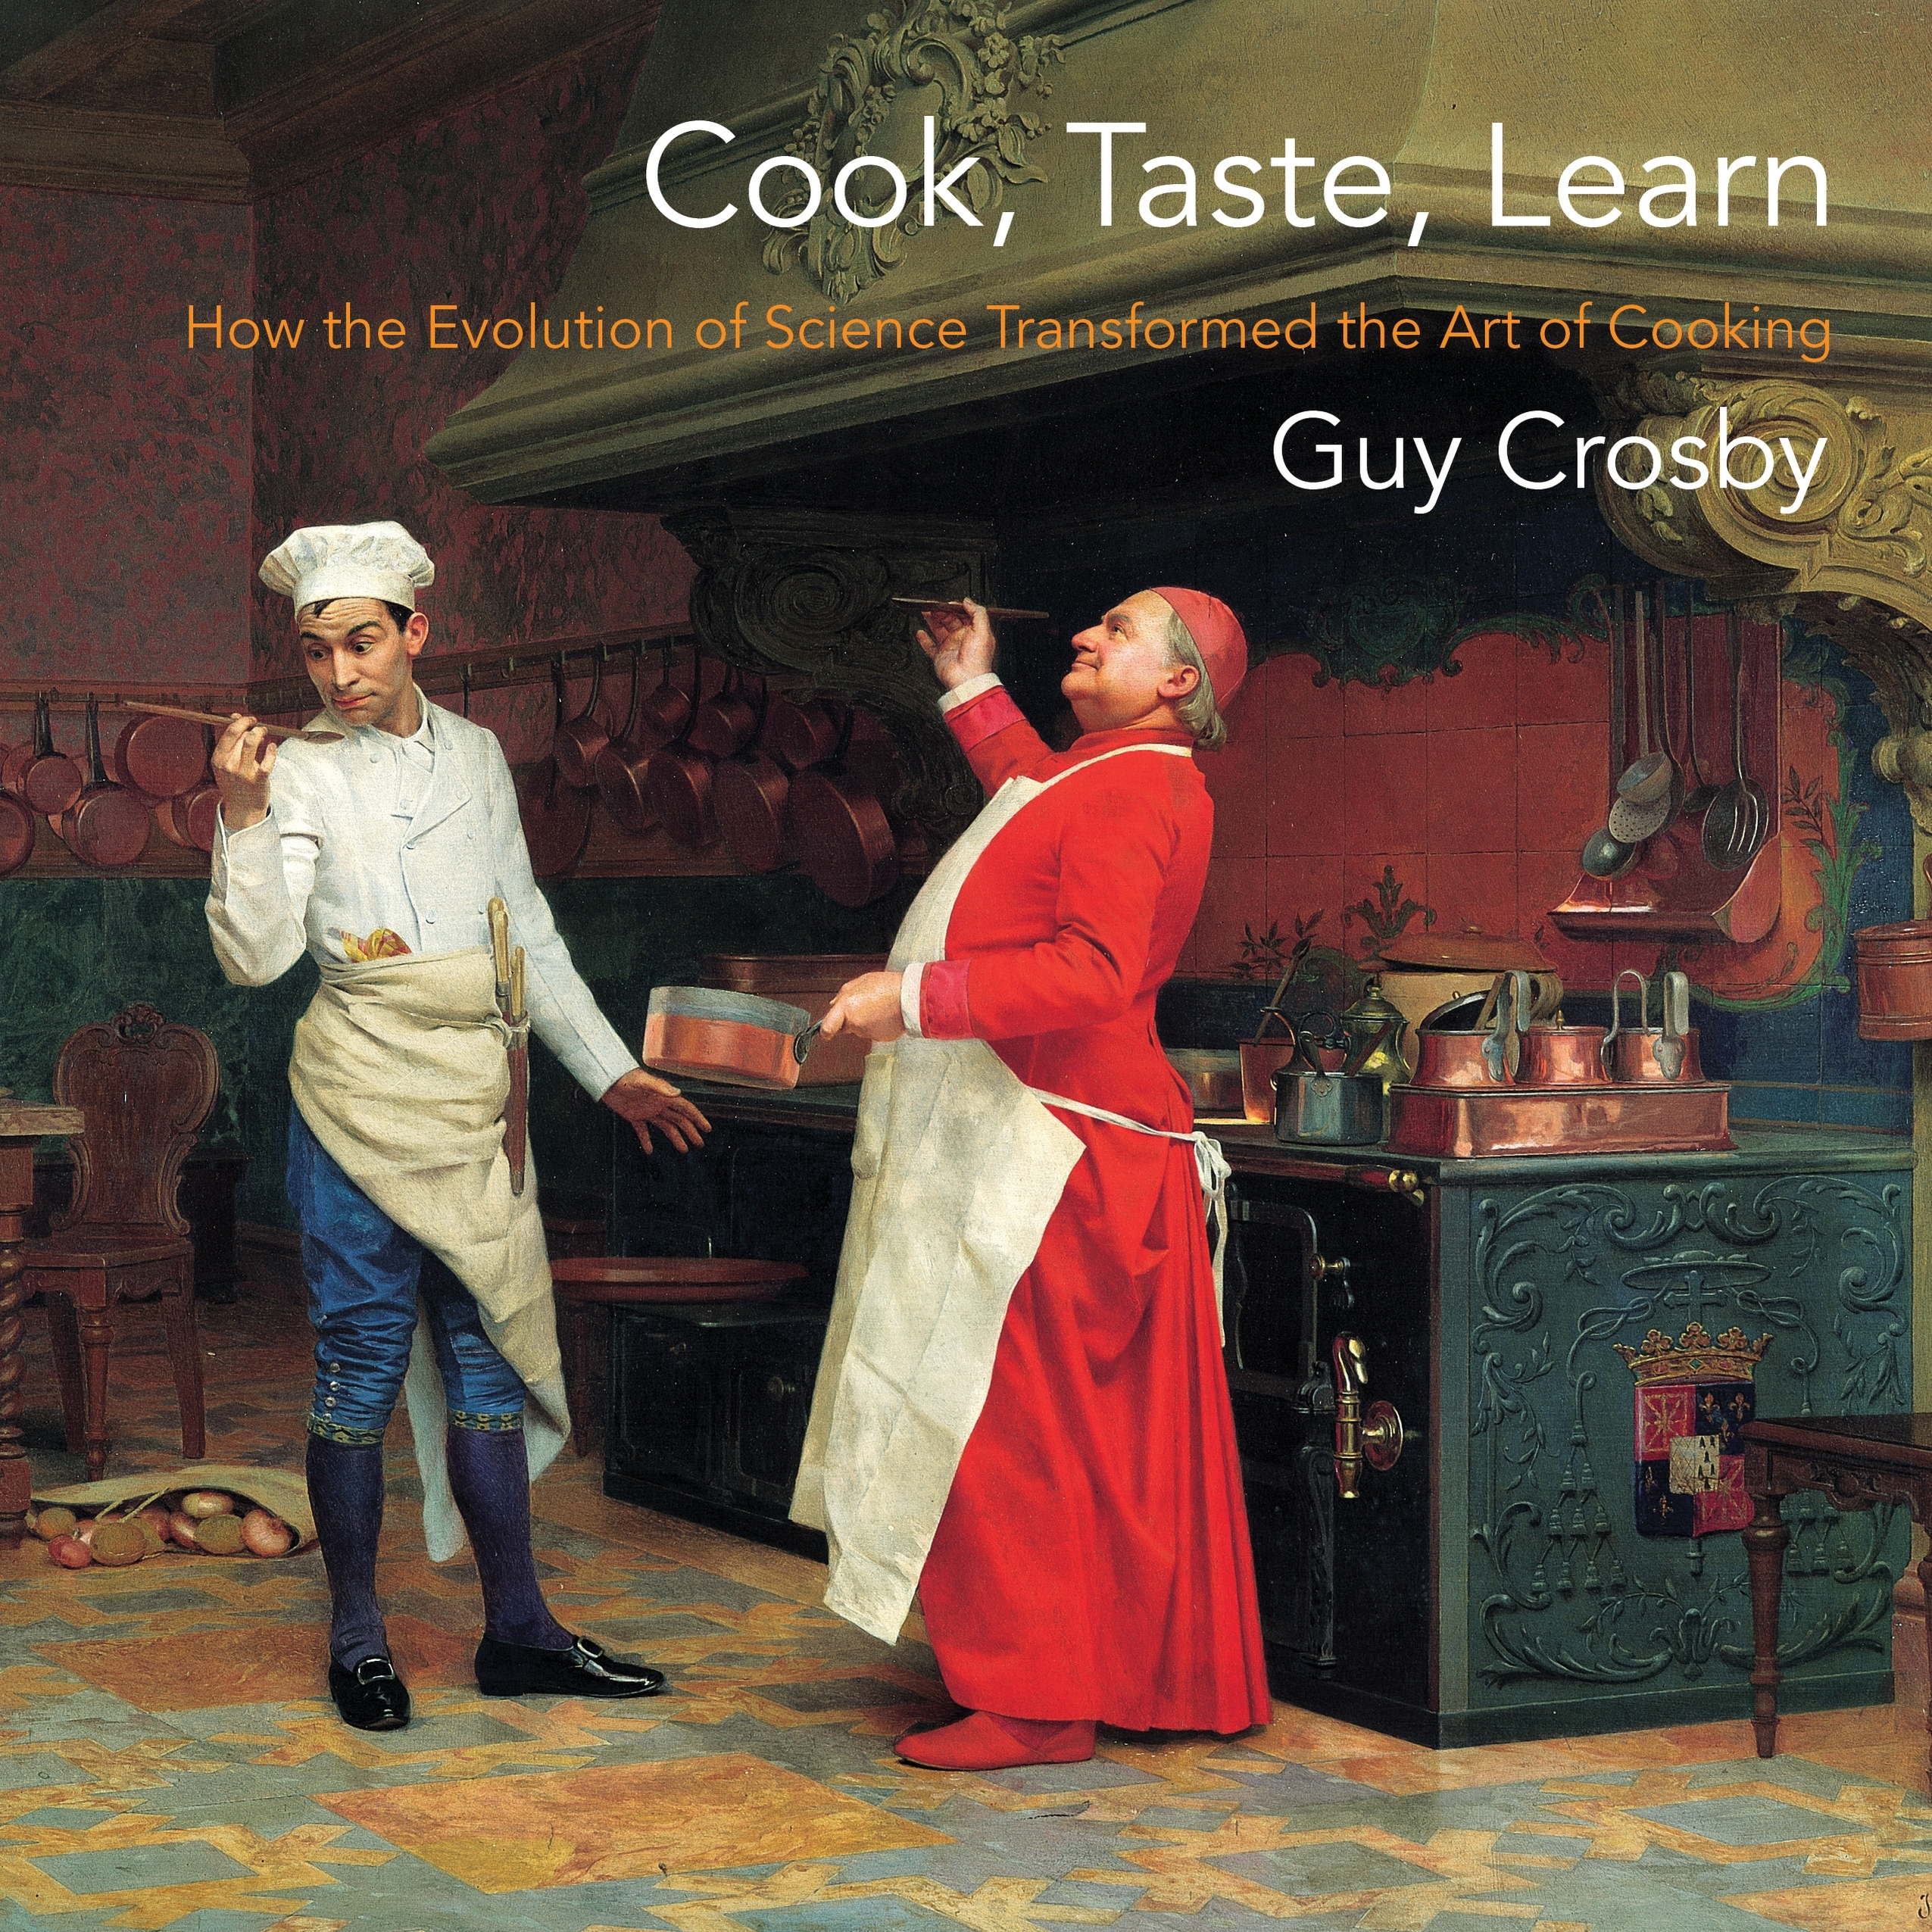 Cook, Taste, Learn book cover